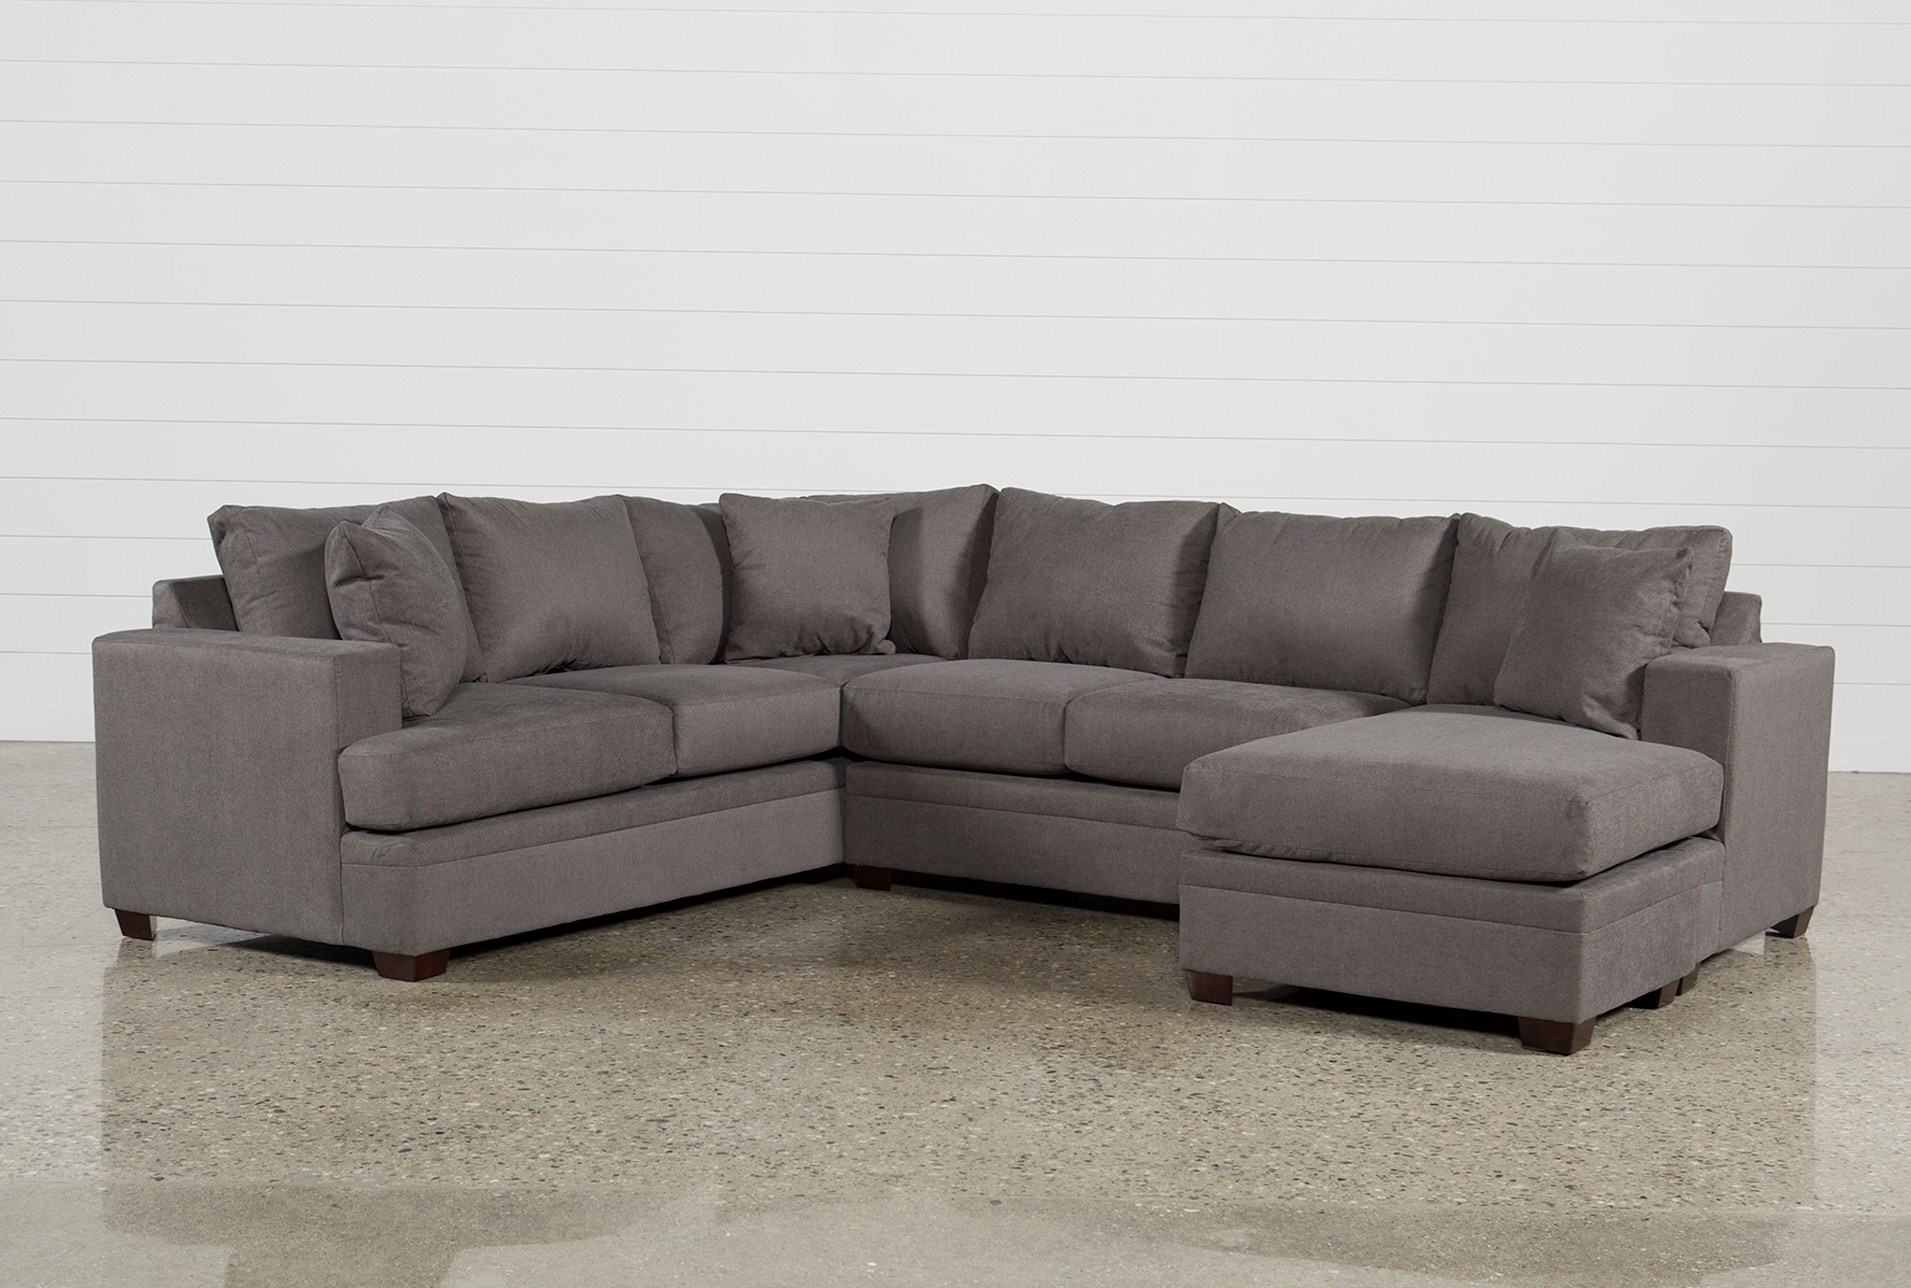 latest beautiful ideas chaise tufted hypermallapartments of fresh sofas with sectional sofa